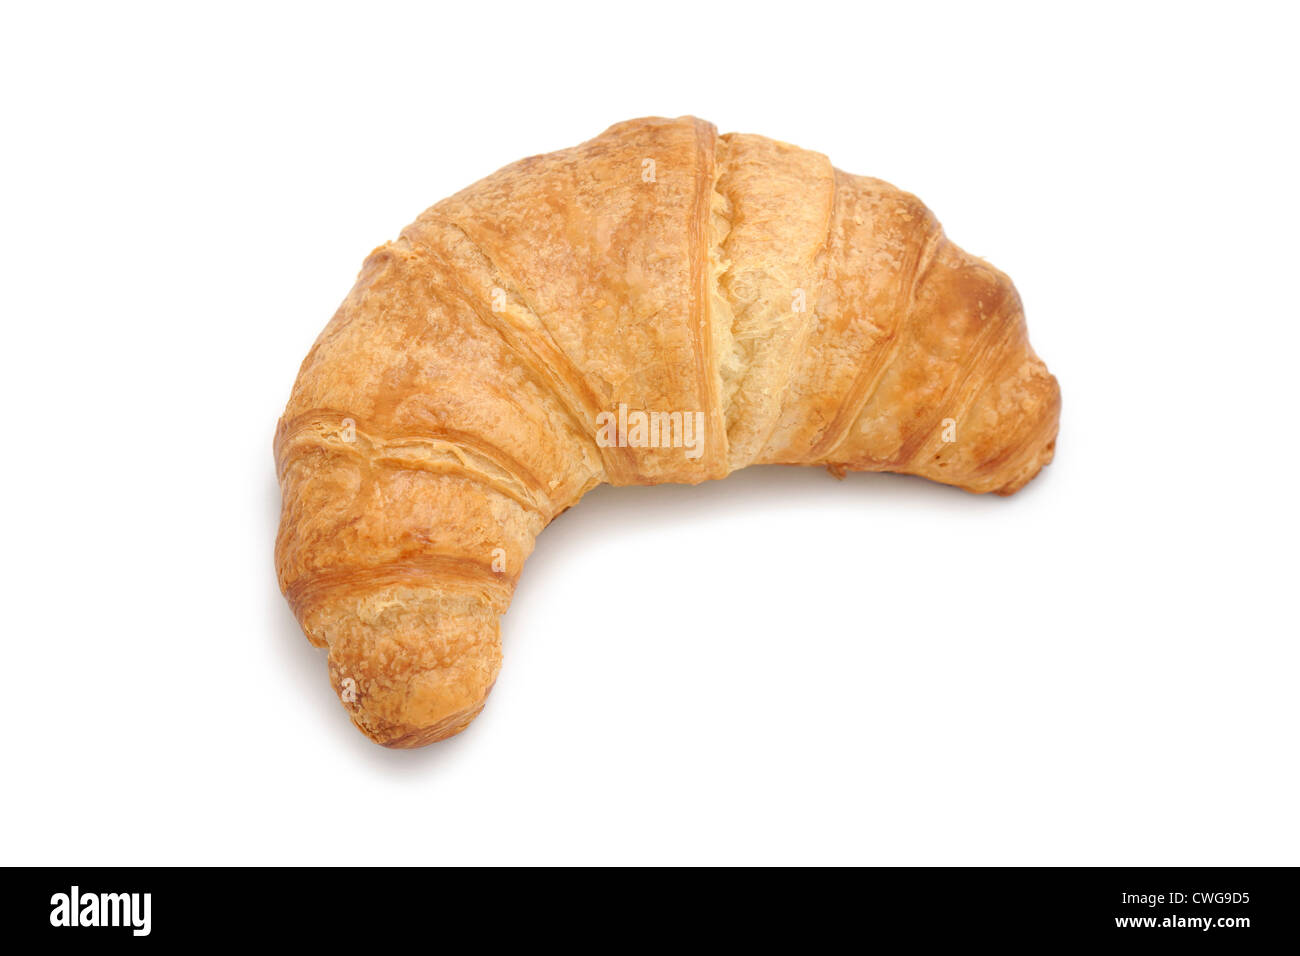 Croissant, Pastry - Stock Image